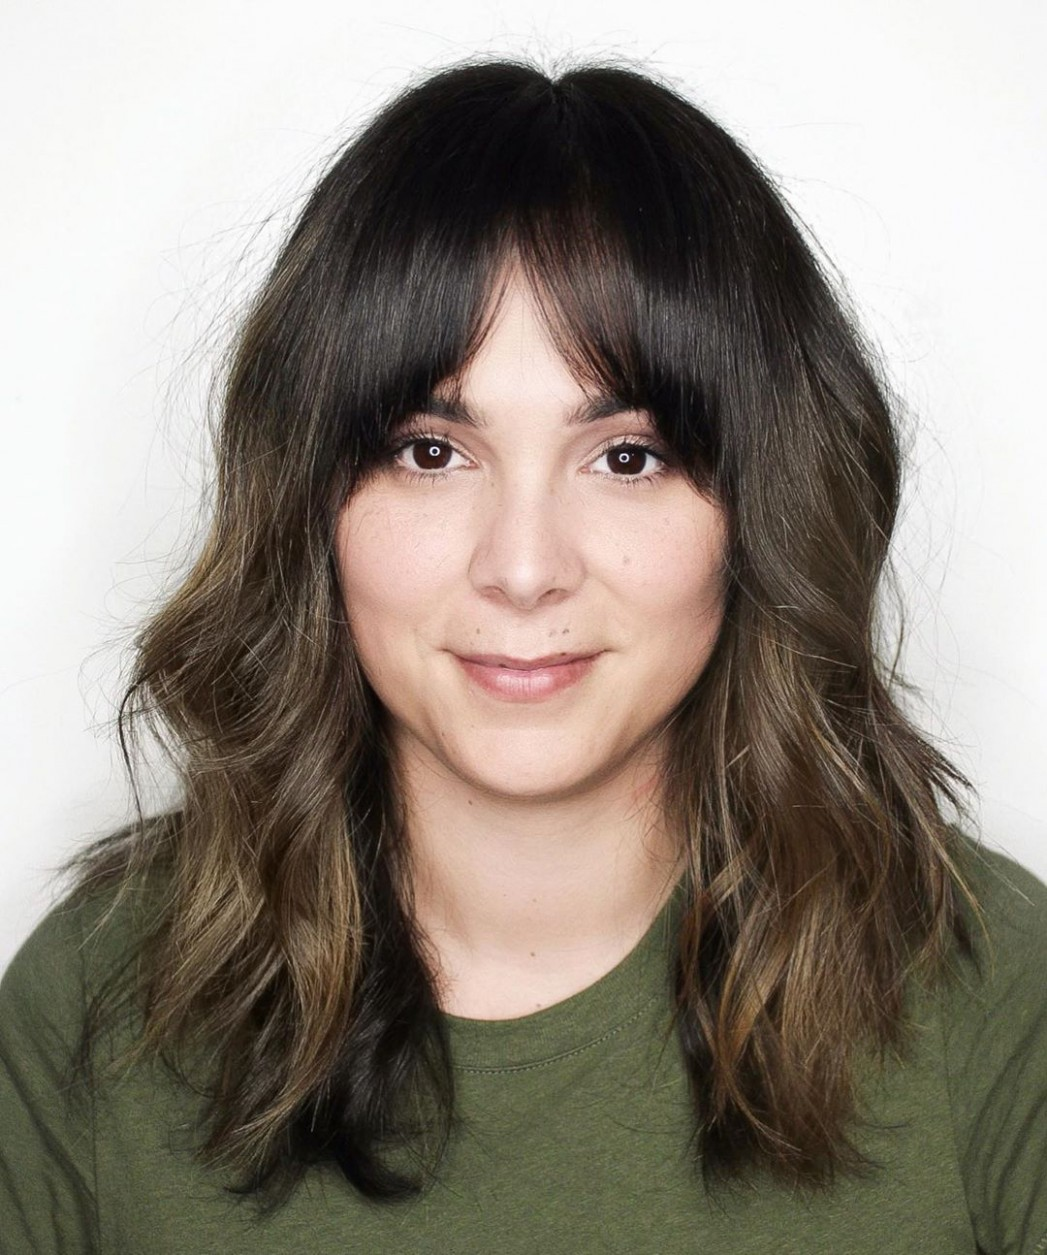 11 Most Trendy And Flattering Bangs For Round Faces In 11 Hadviser Side Bangs For Round Face